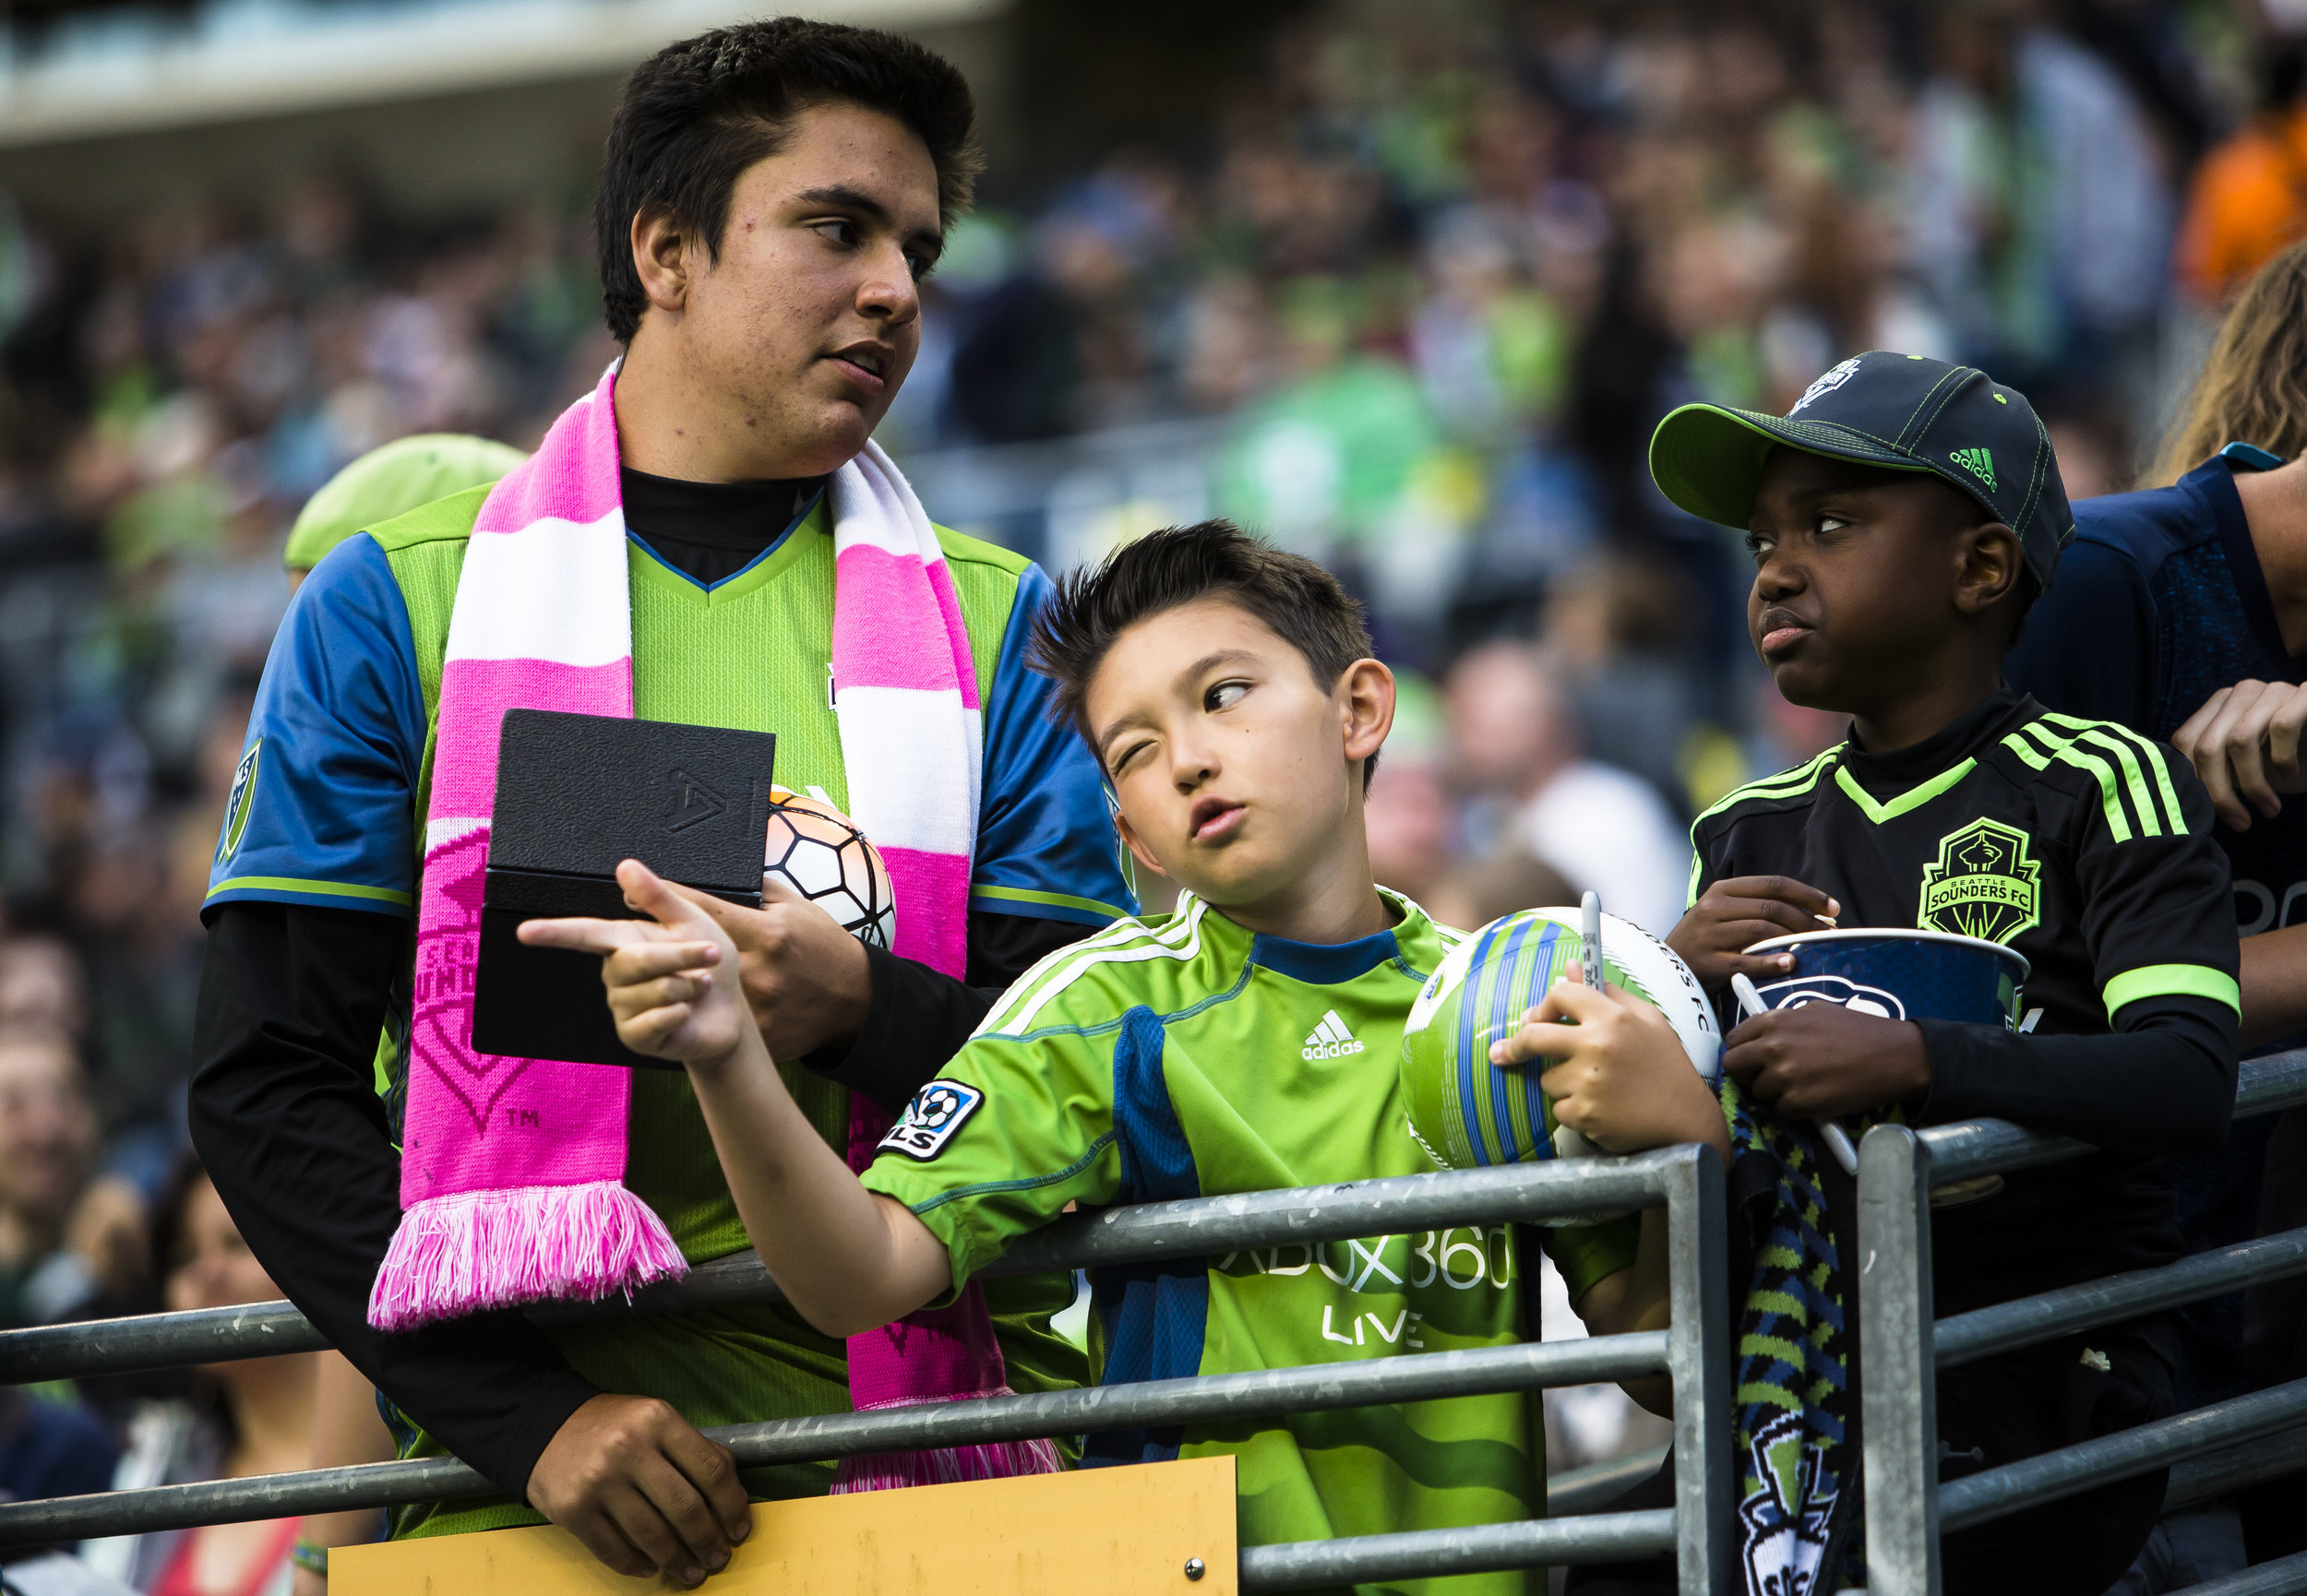 A young fan gives a hand signal to a Sounders player as he walks onto the pitch at CenturyLink Field in Seattle, Wash. on July 5, 2016.  (Lacey Young, seattlepi.com)